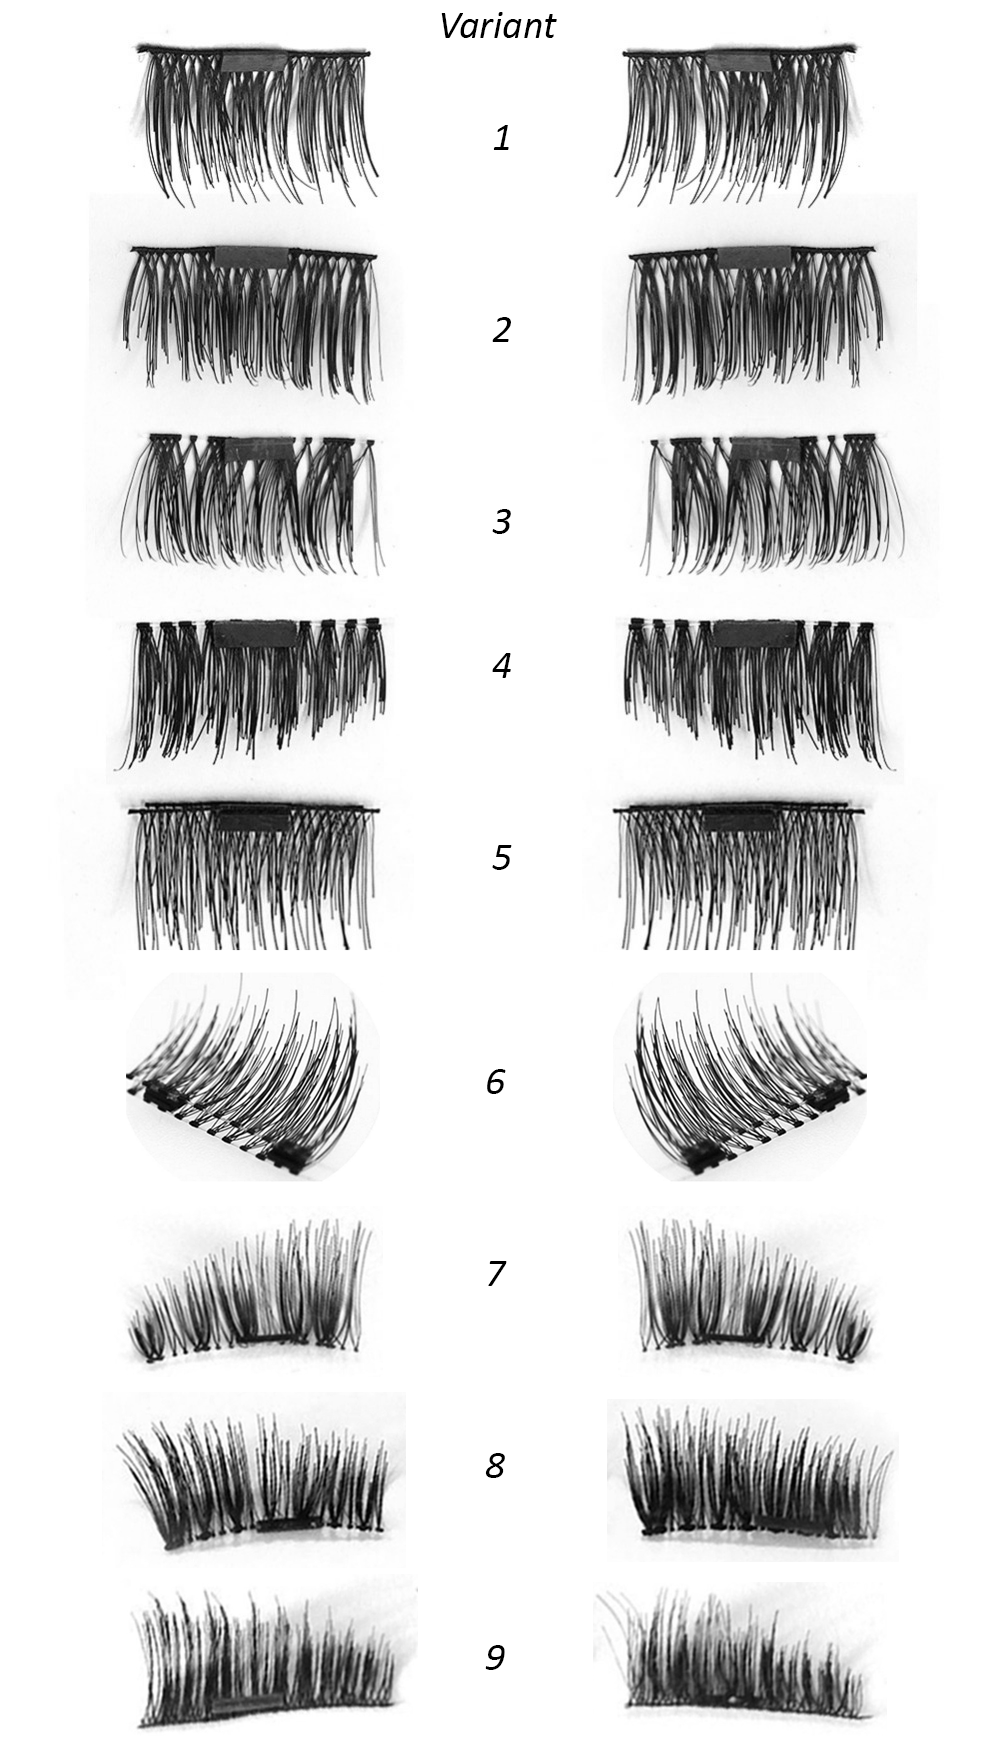 Magnetic Fake Eyelashes - variant